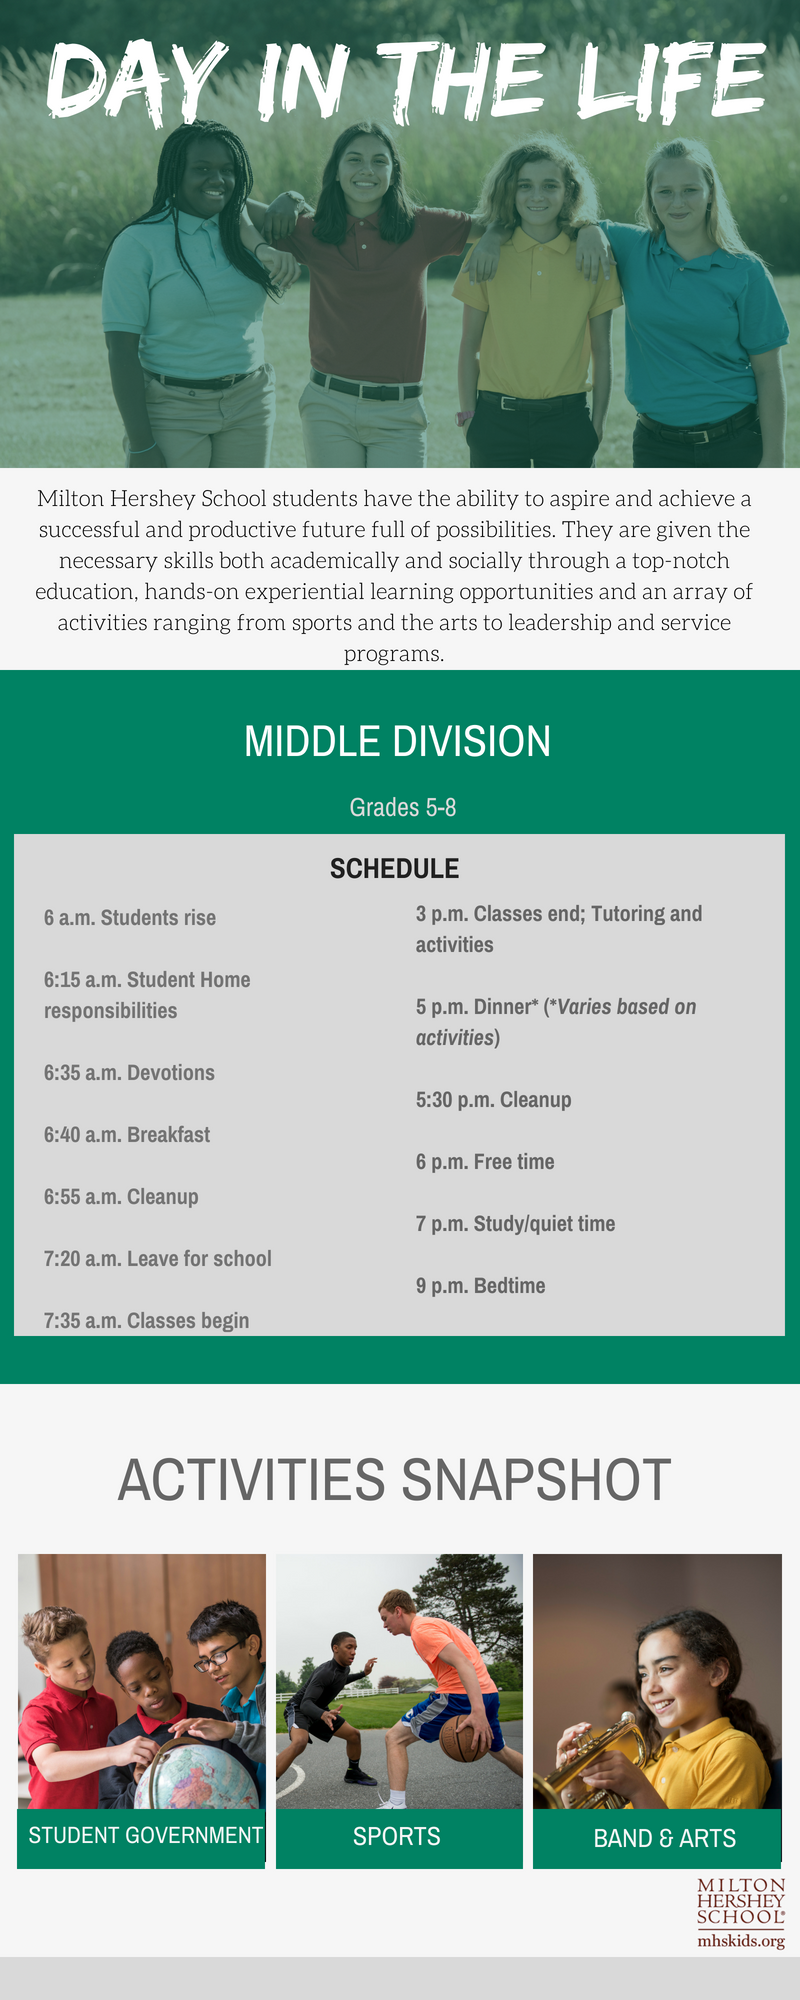 Schedule for a Middle Division student at MHS.